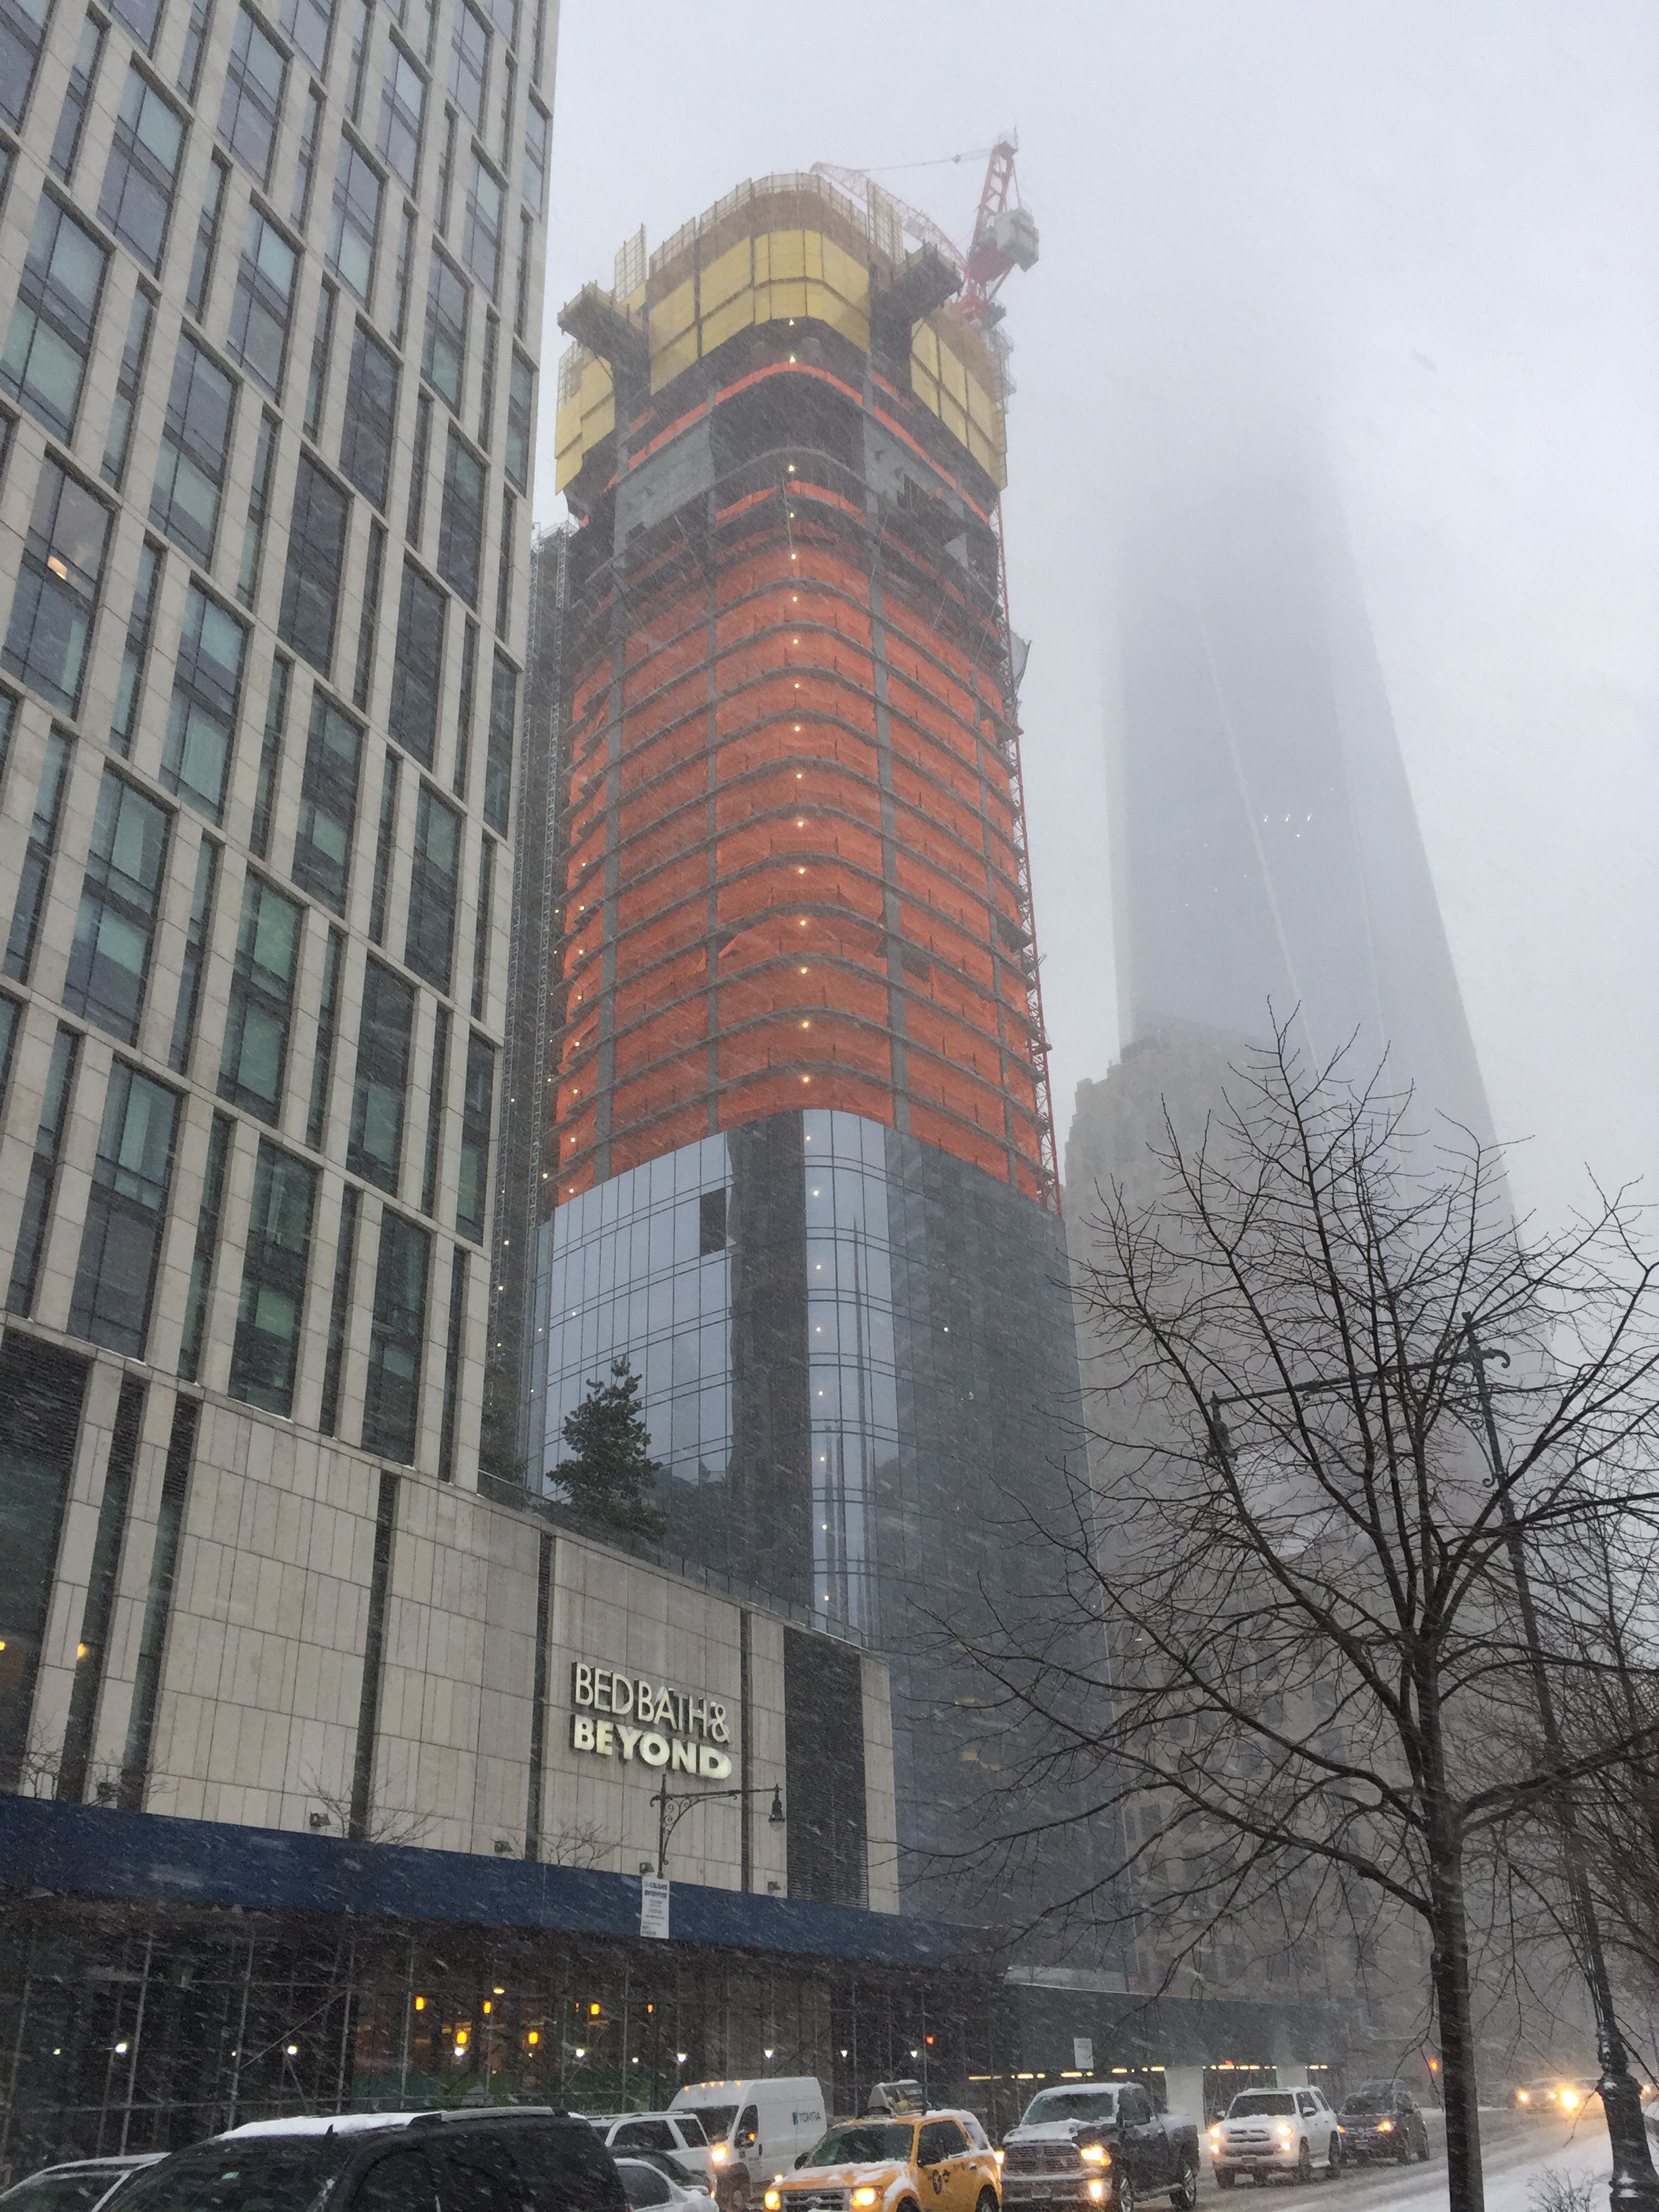 111 Murray Street on January 7, 2016. Photo by Vertical_Gotham via YIMBY Forums